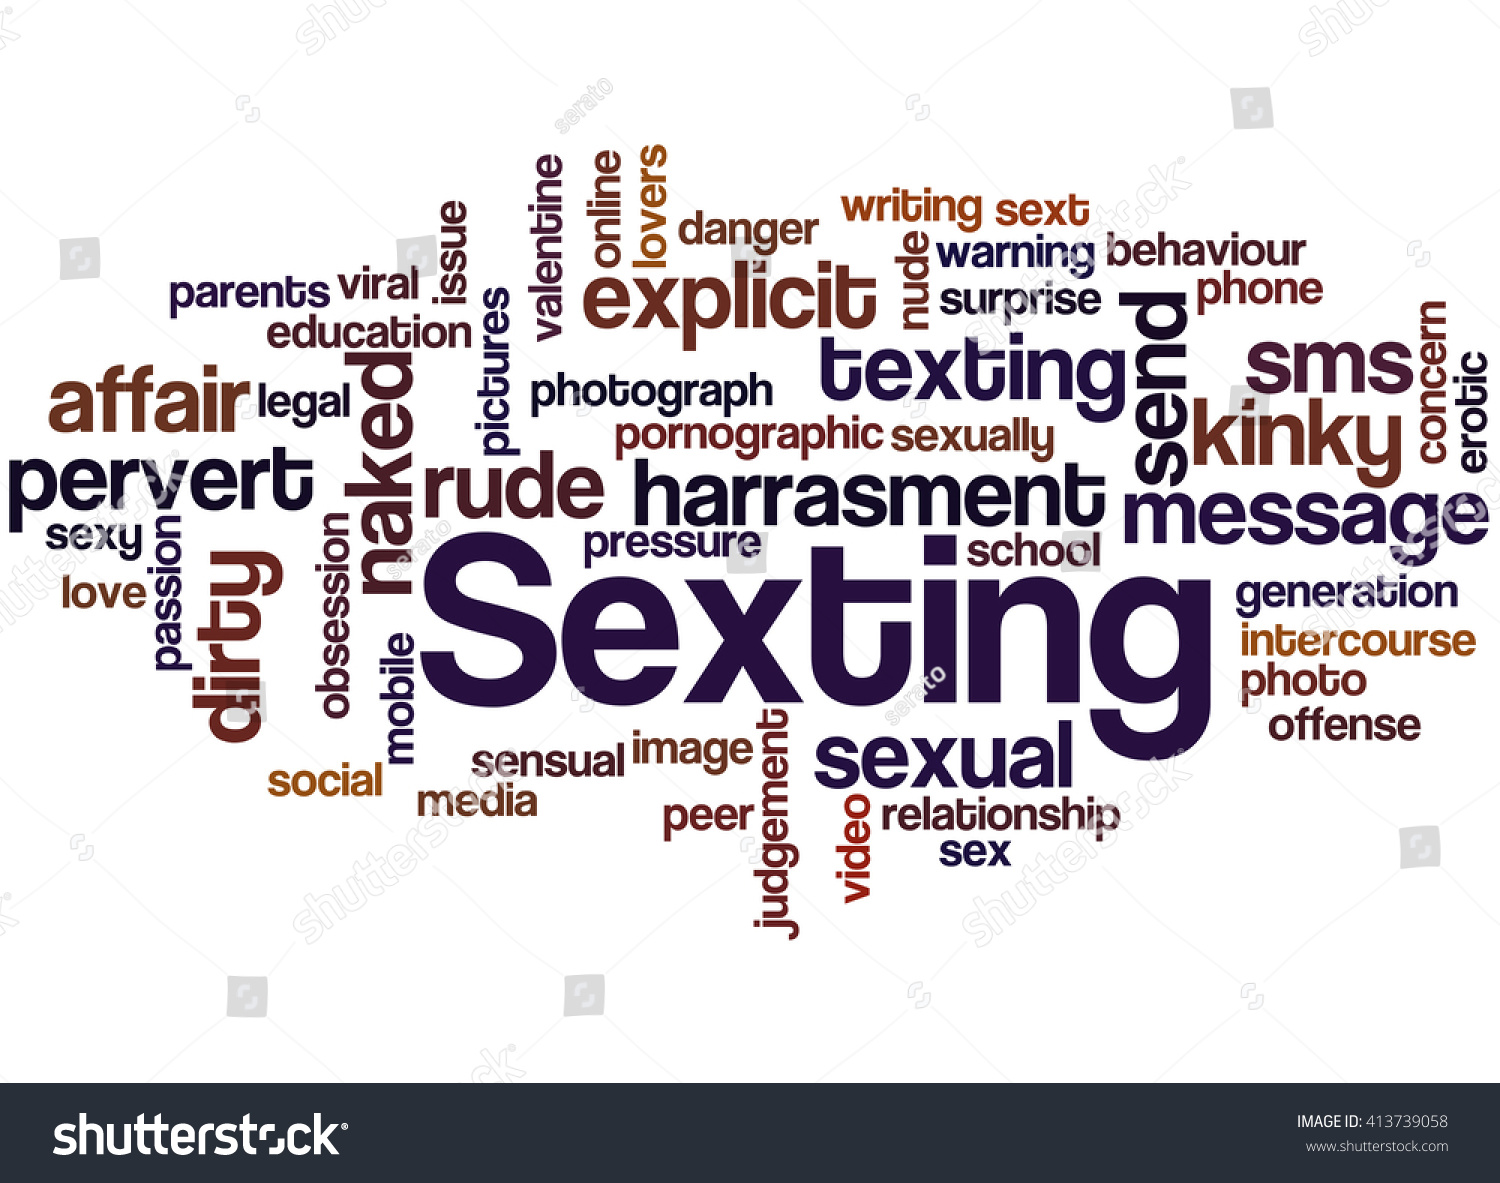 Sexting word cloud concept on white stock illustration 413739058 sexting word cloud concept on white background biocorpaavc Choice Image